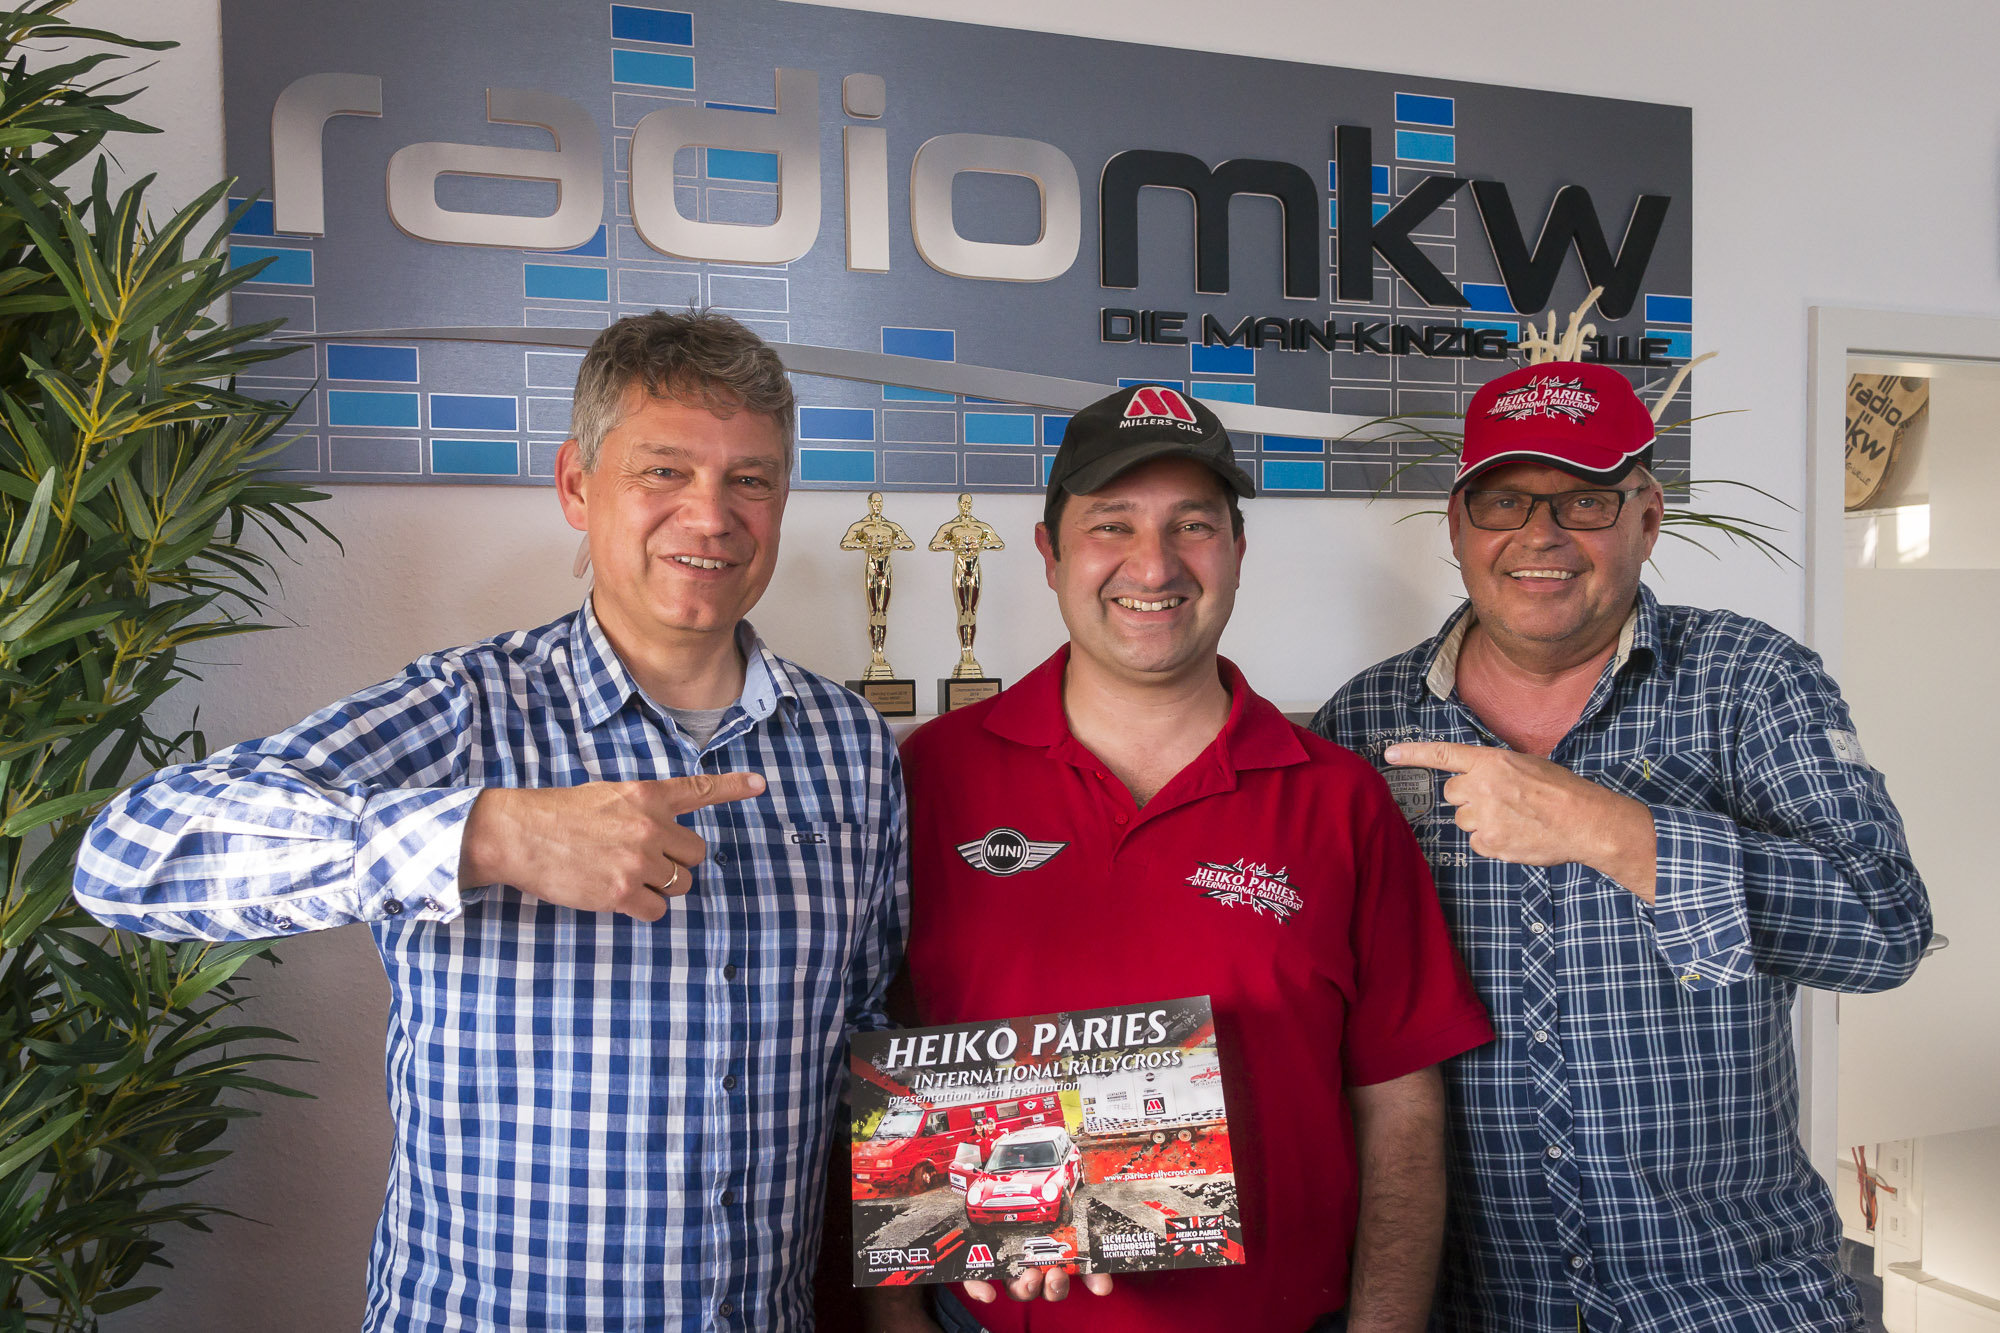 Paries Rallycross goes Radio! We proudly present our new Team Media Partner Radio MKW!